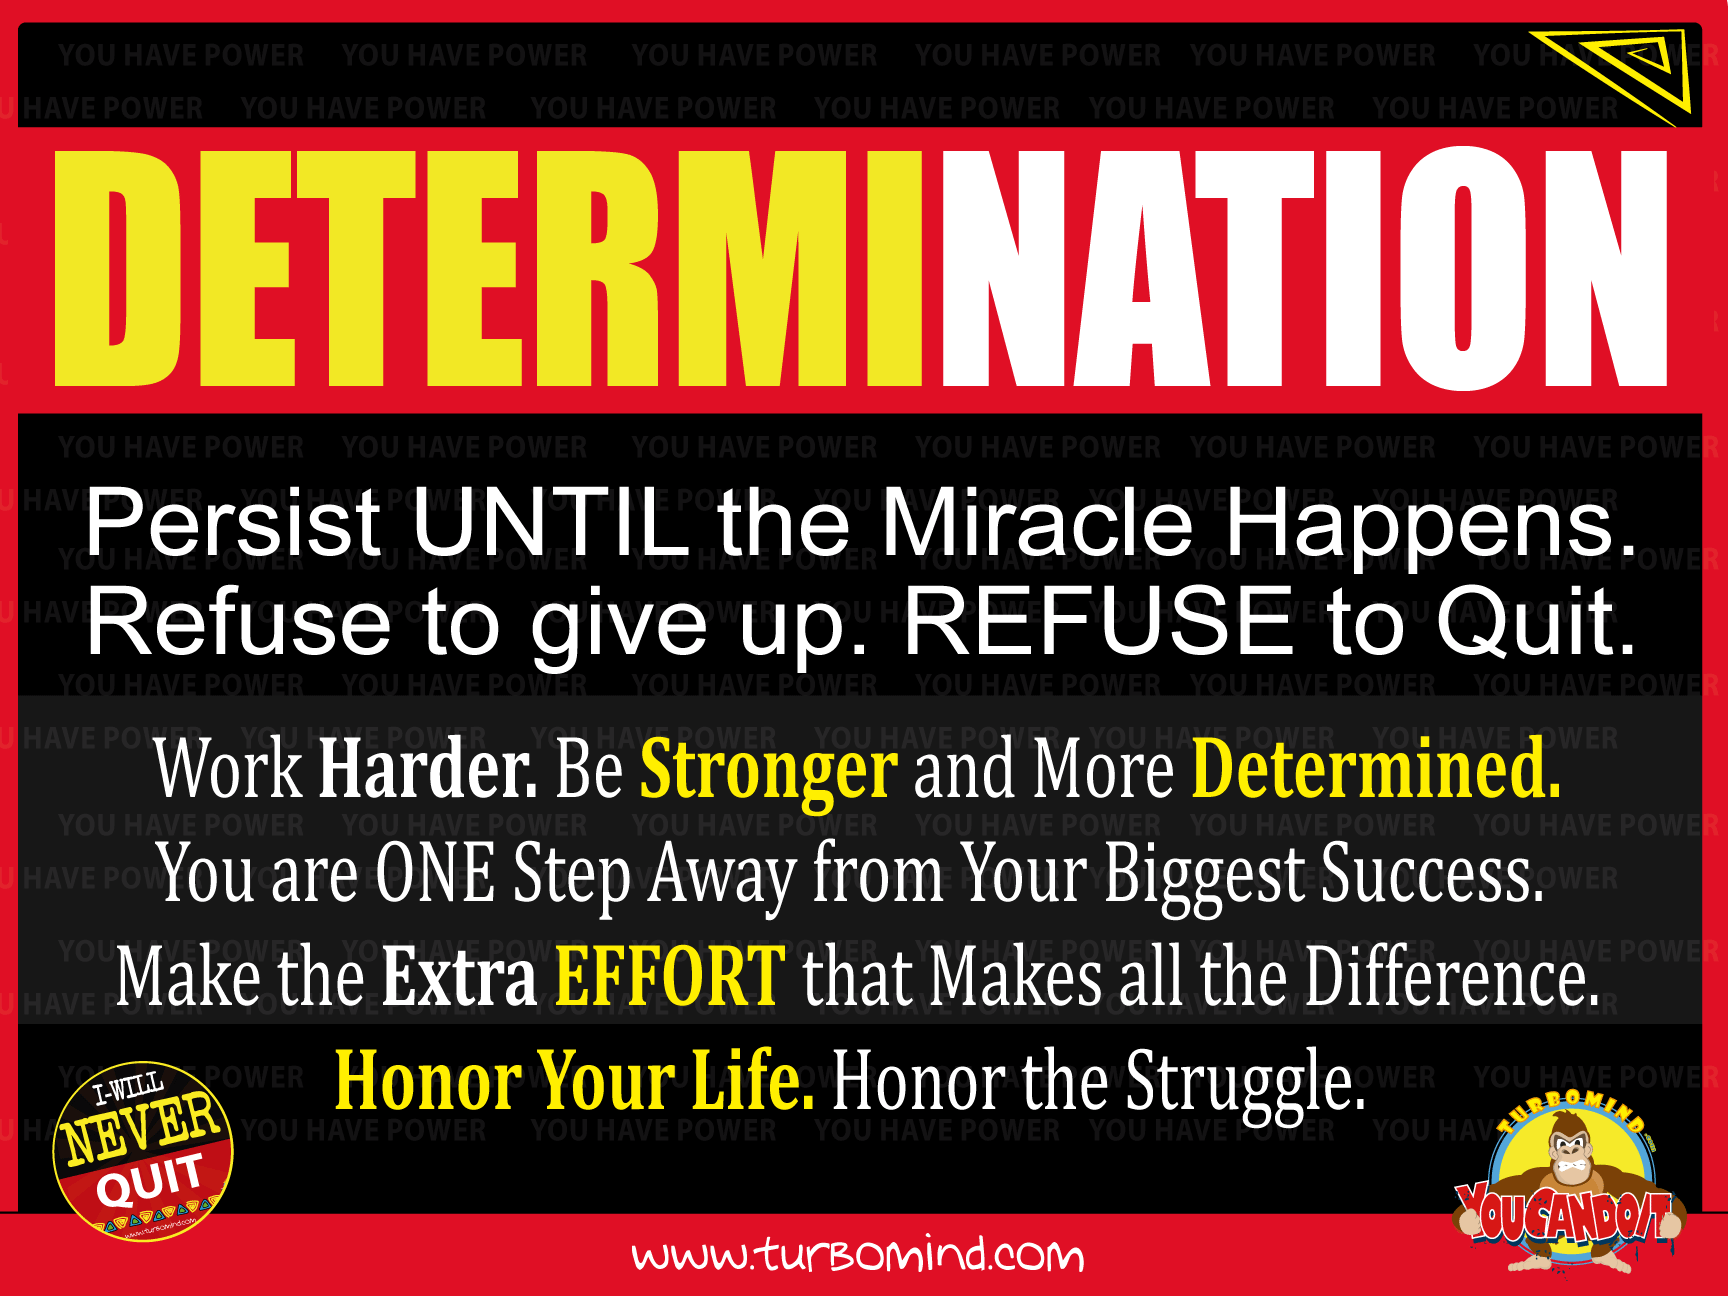 DETERMINATION. REFUSE TO GIVE UP